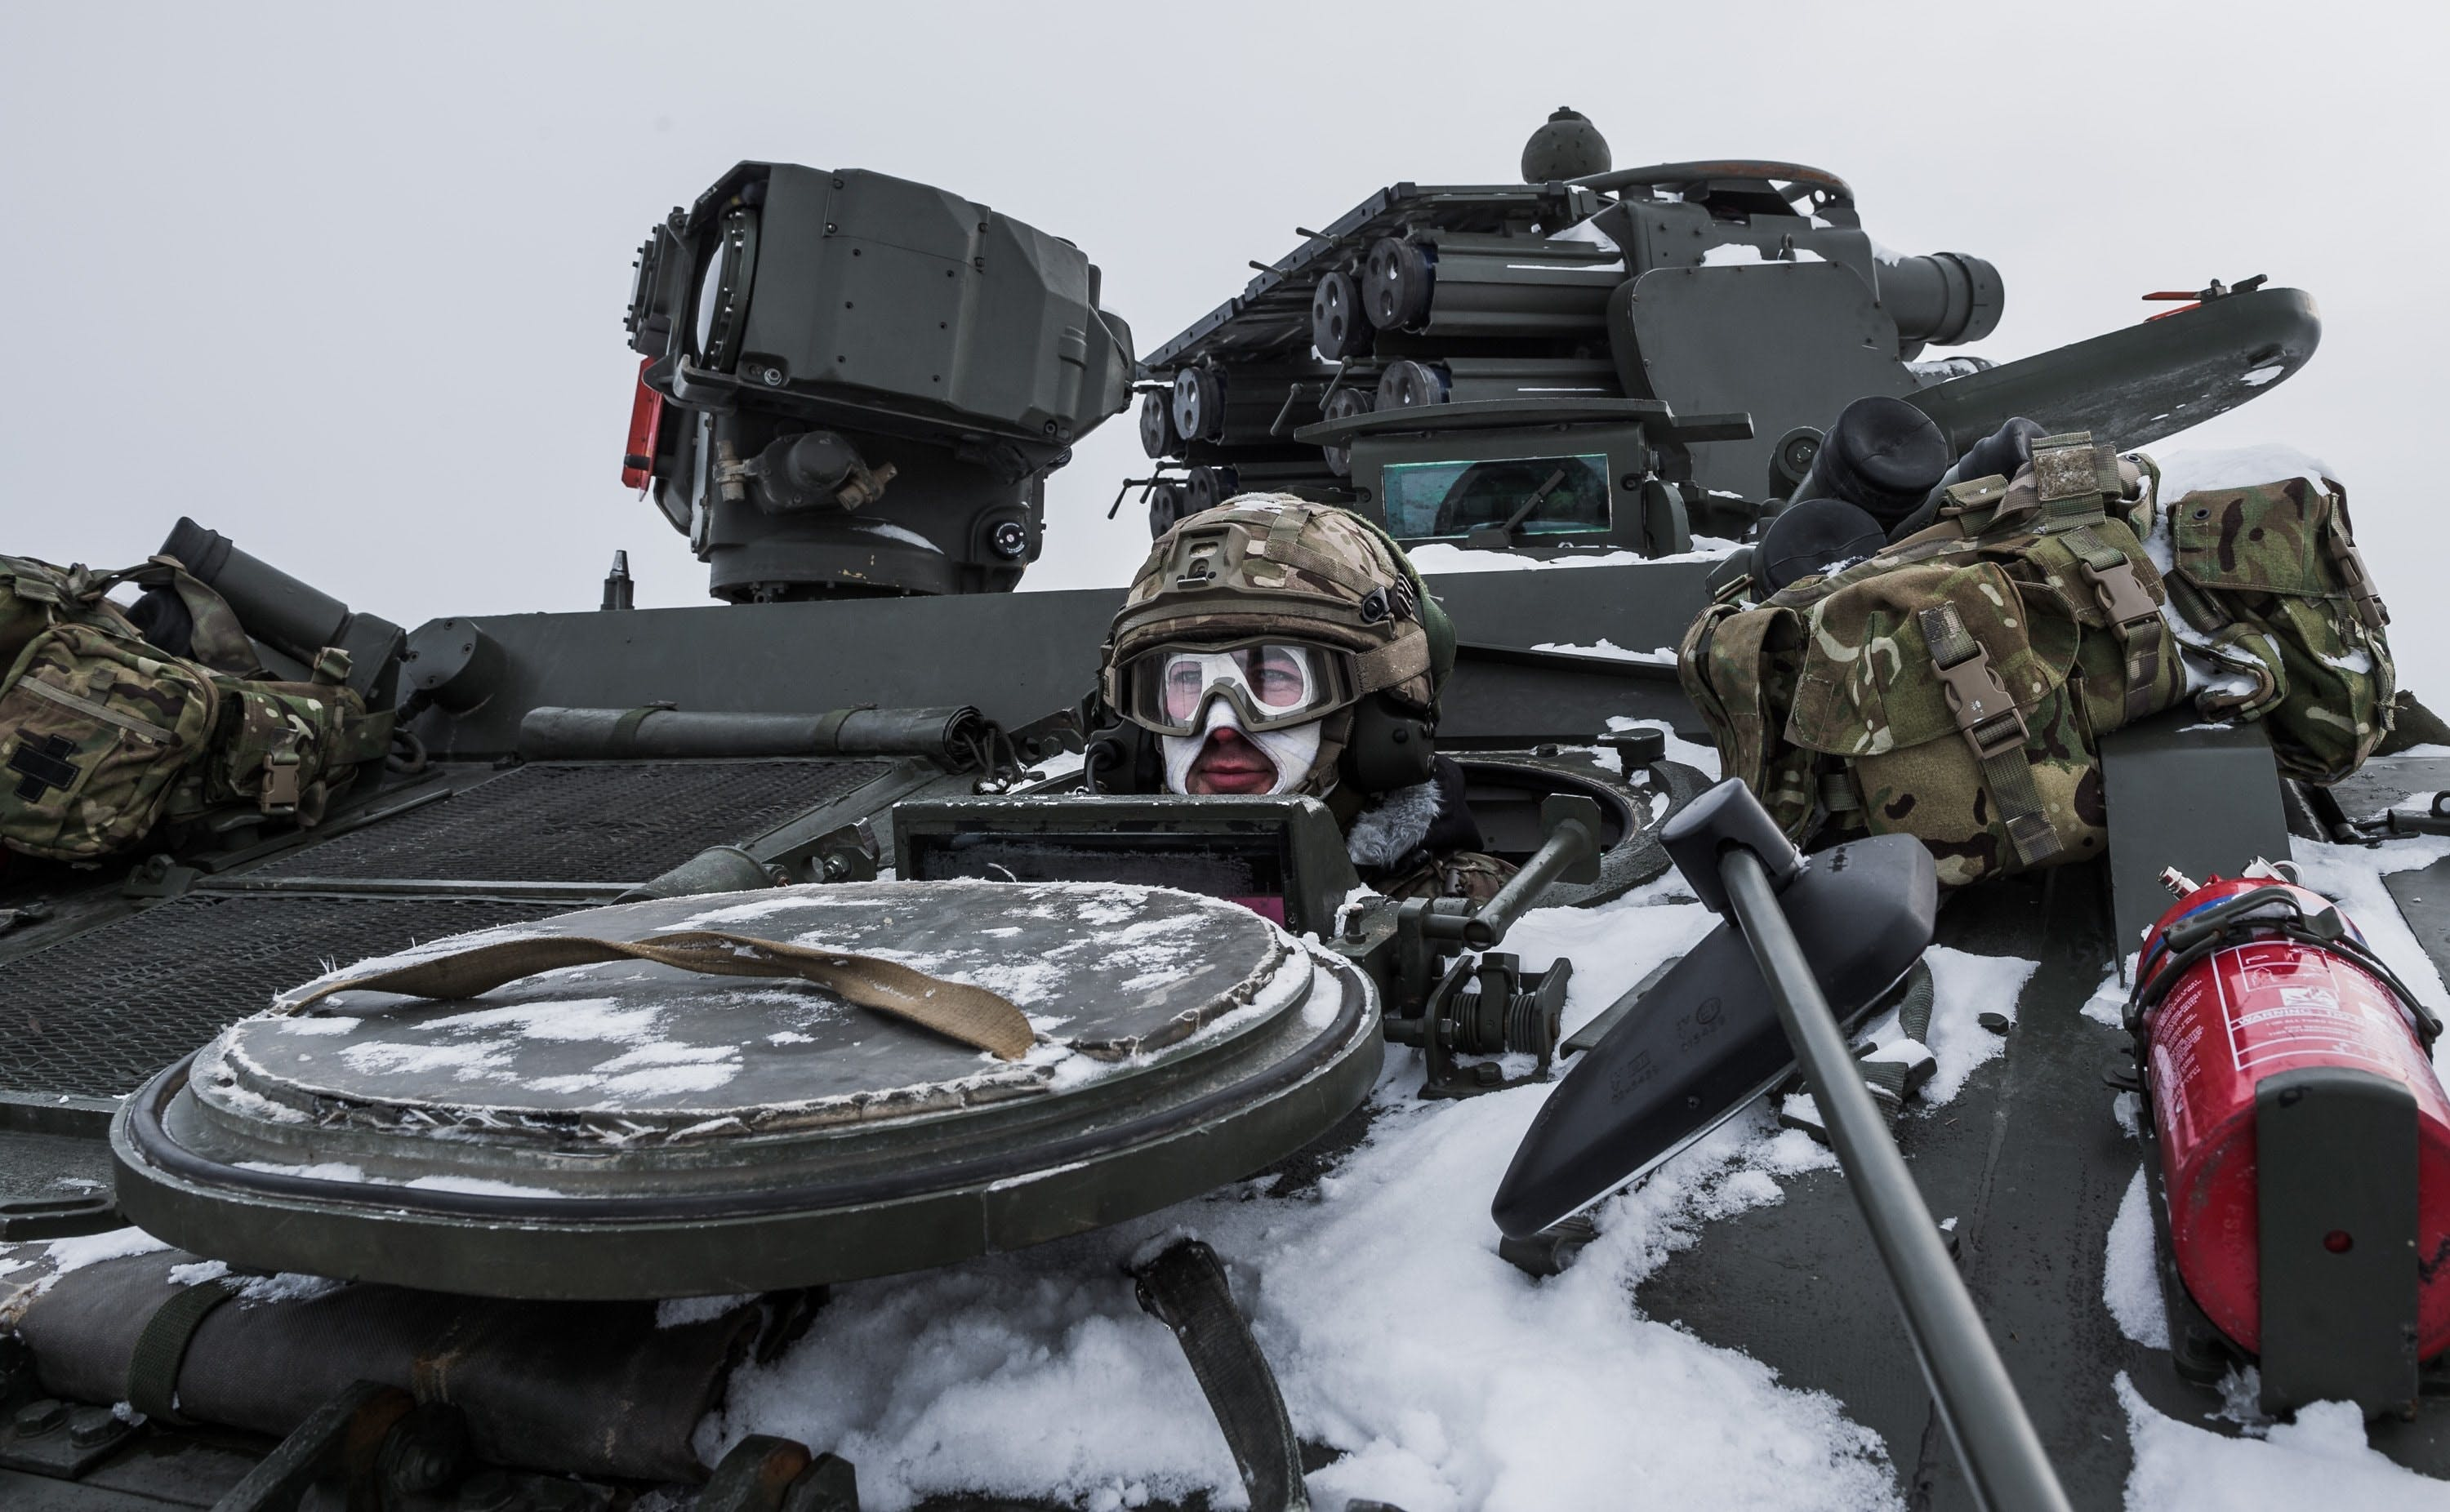 The British Army supporting NATO's Enhanced Forward Presence (eFP)